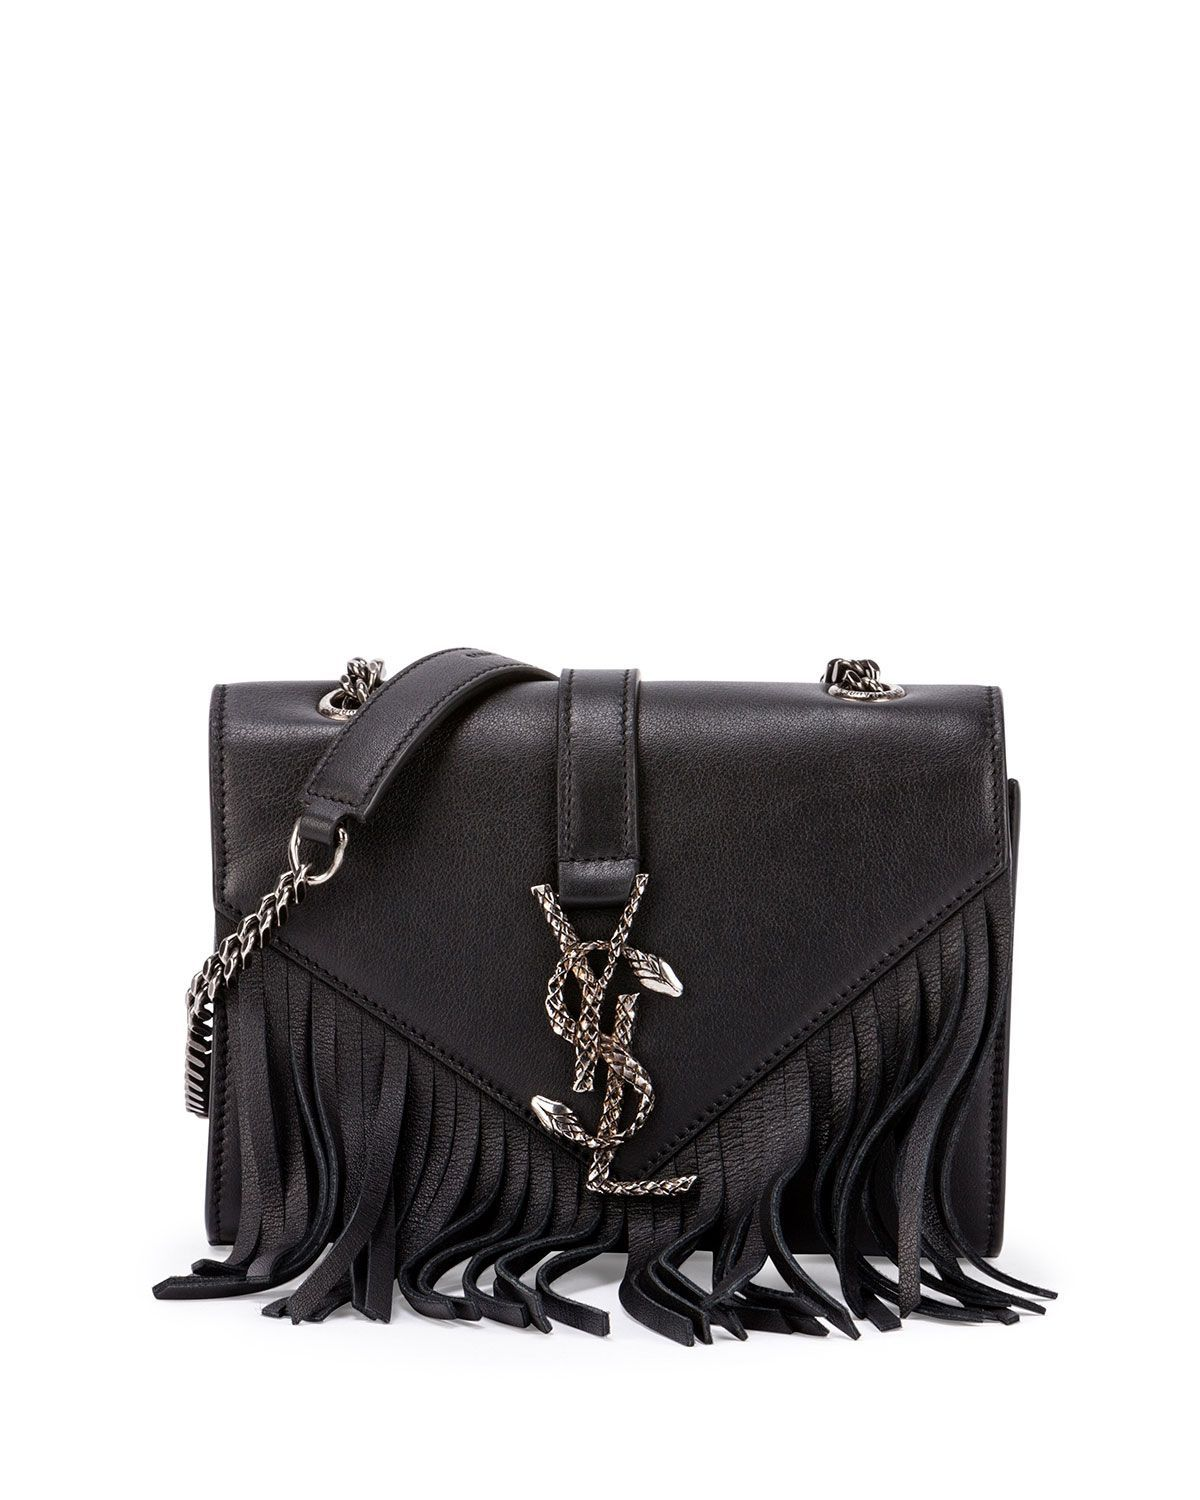 Saint Laurent calfskin crossbody bag. Chain crossbody strap  21.3